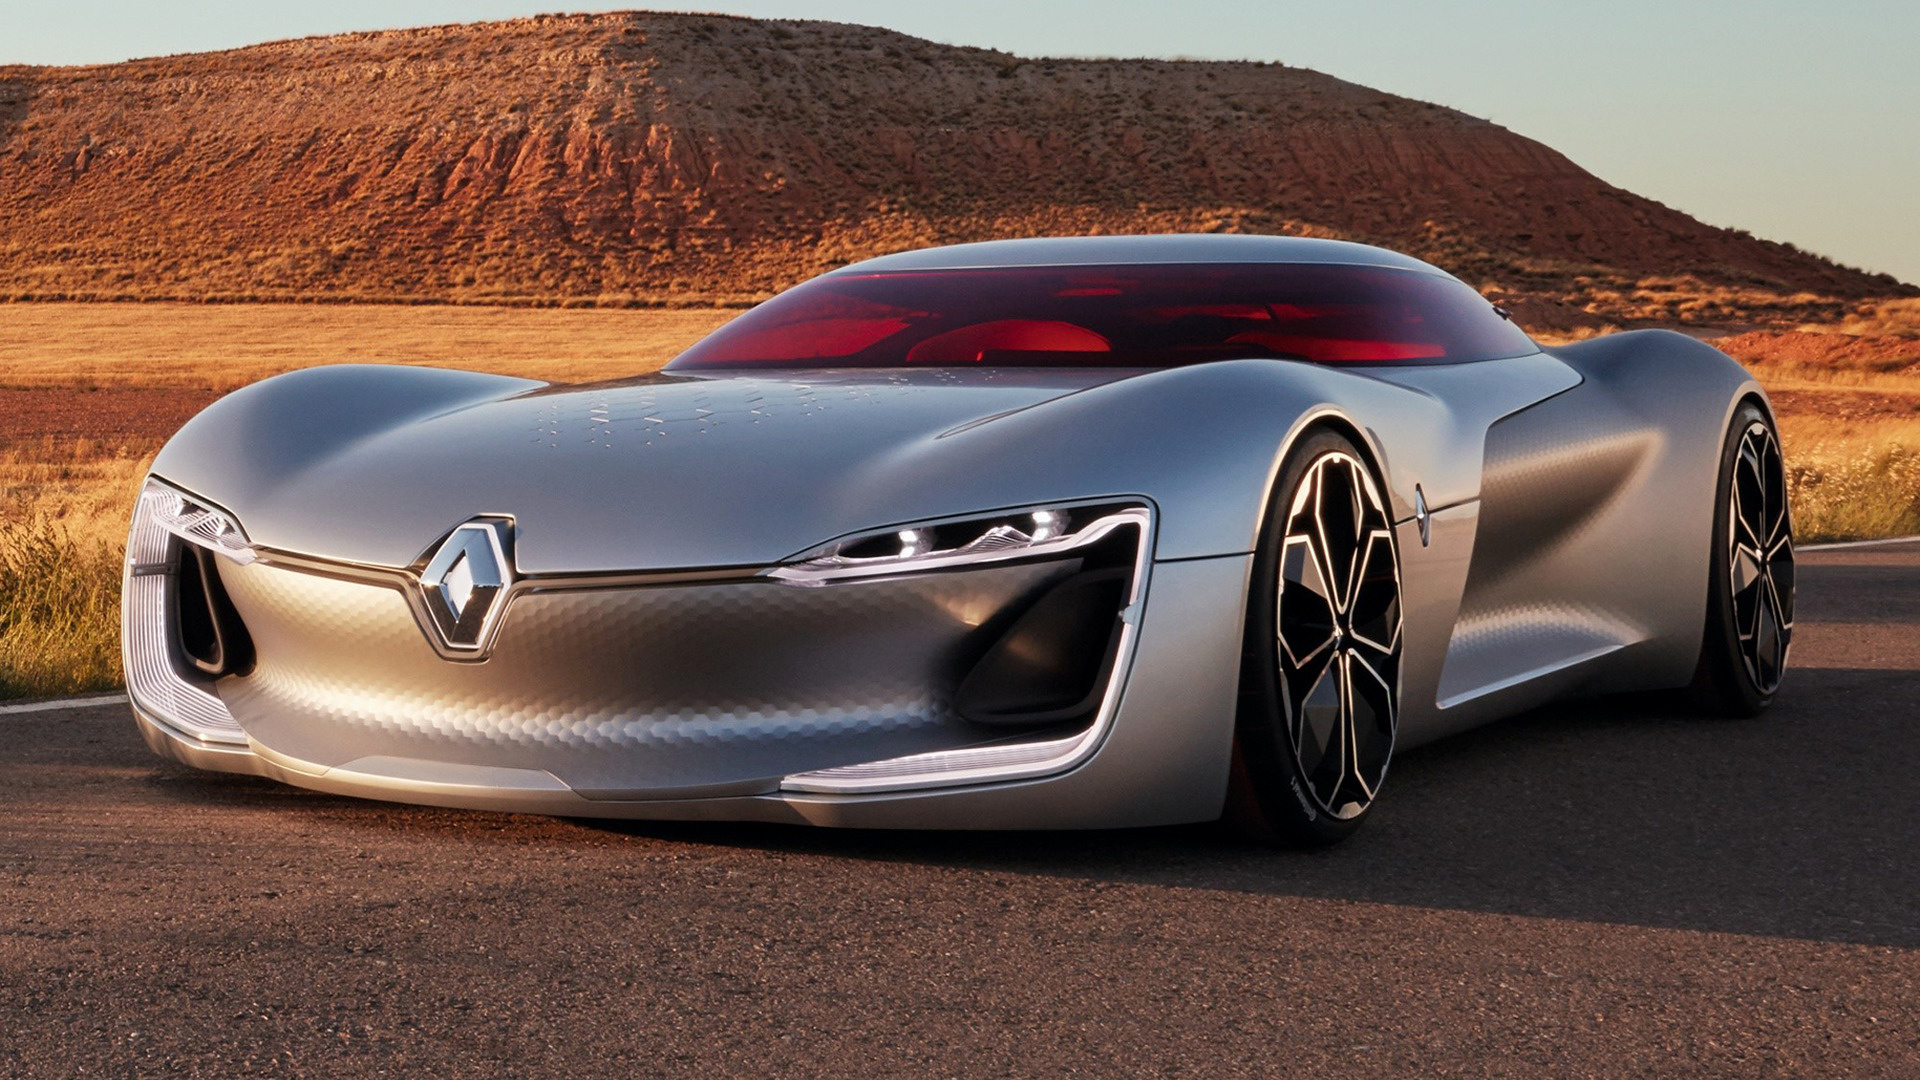 2016 Renault Trezor Concept - Wallpapers and HD Images ...